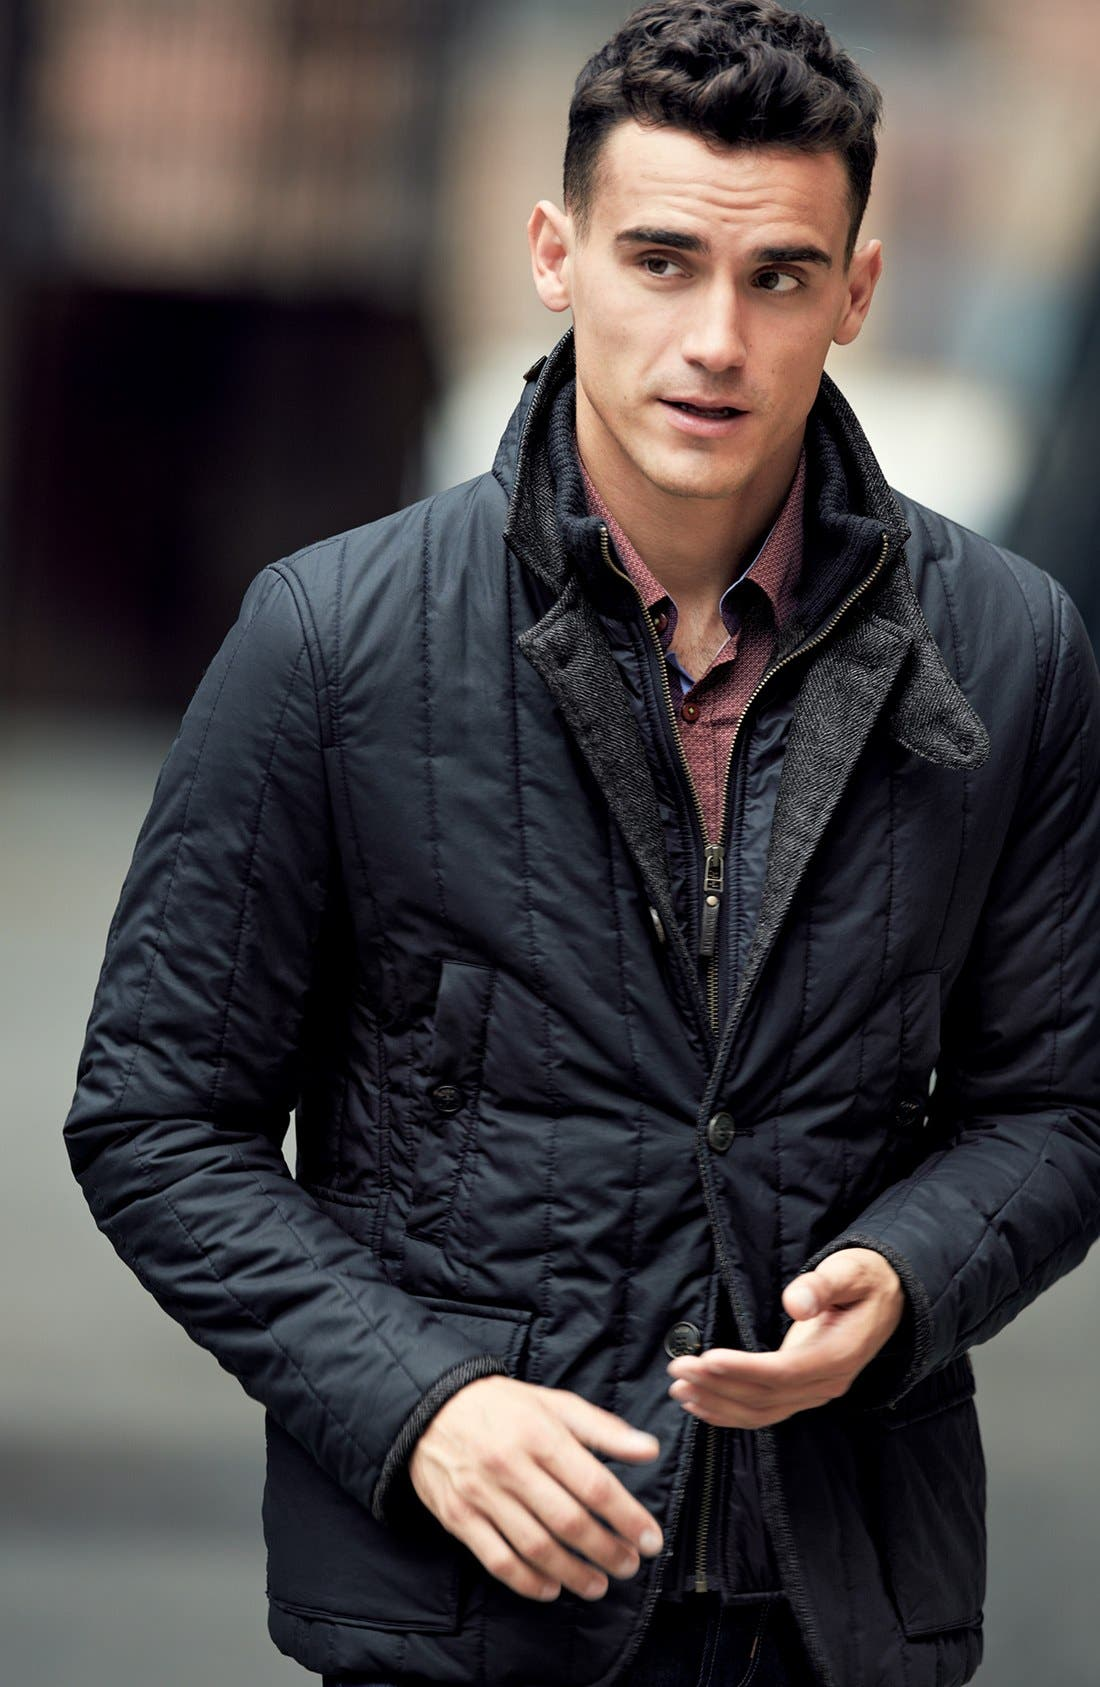 Main Image - Ted Baker London Quilted Jacket & Trim Fit Sport Shirt